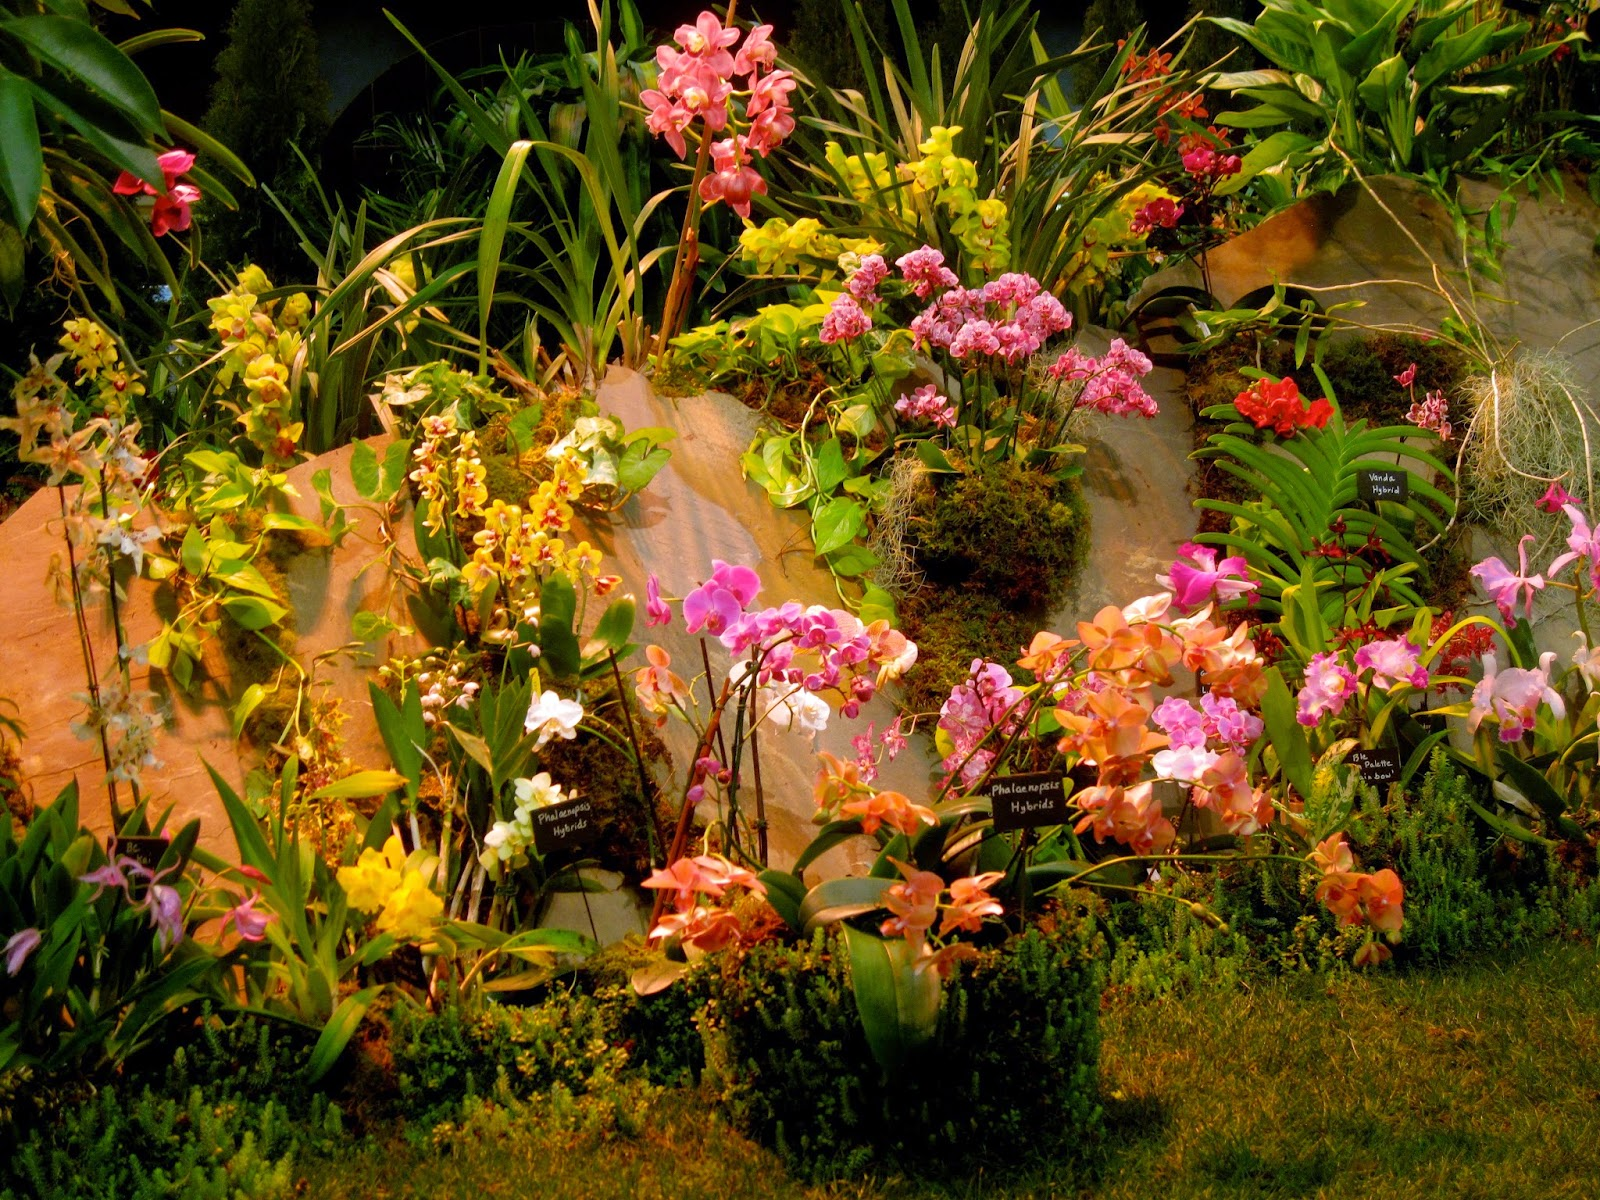 Bonney Lassie: A Longer Look at The NWFGS Display Gardens